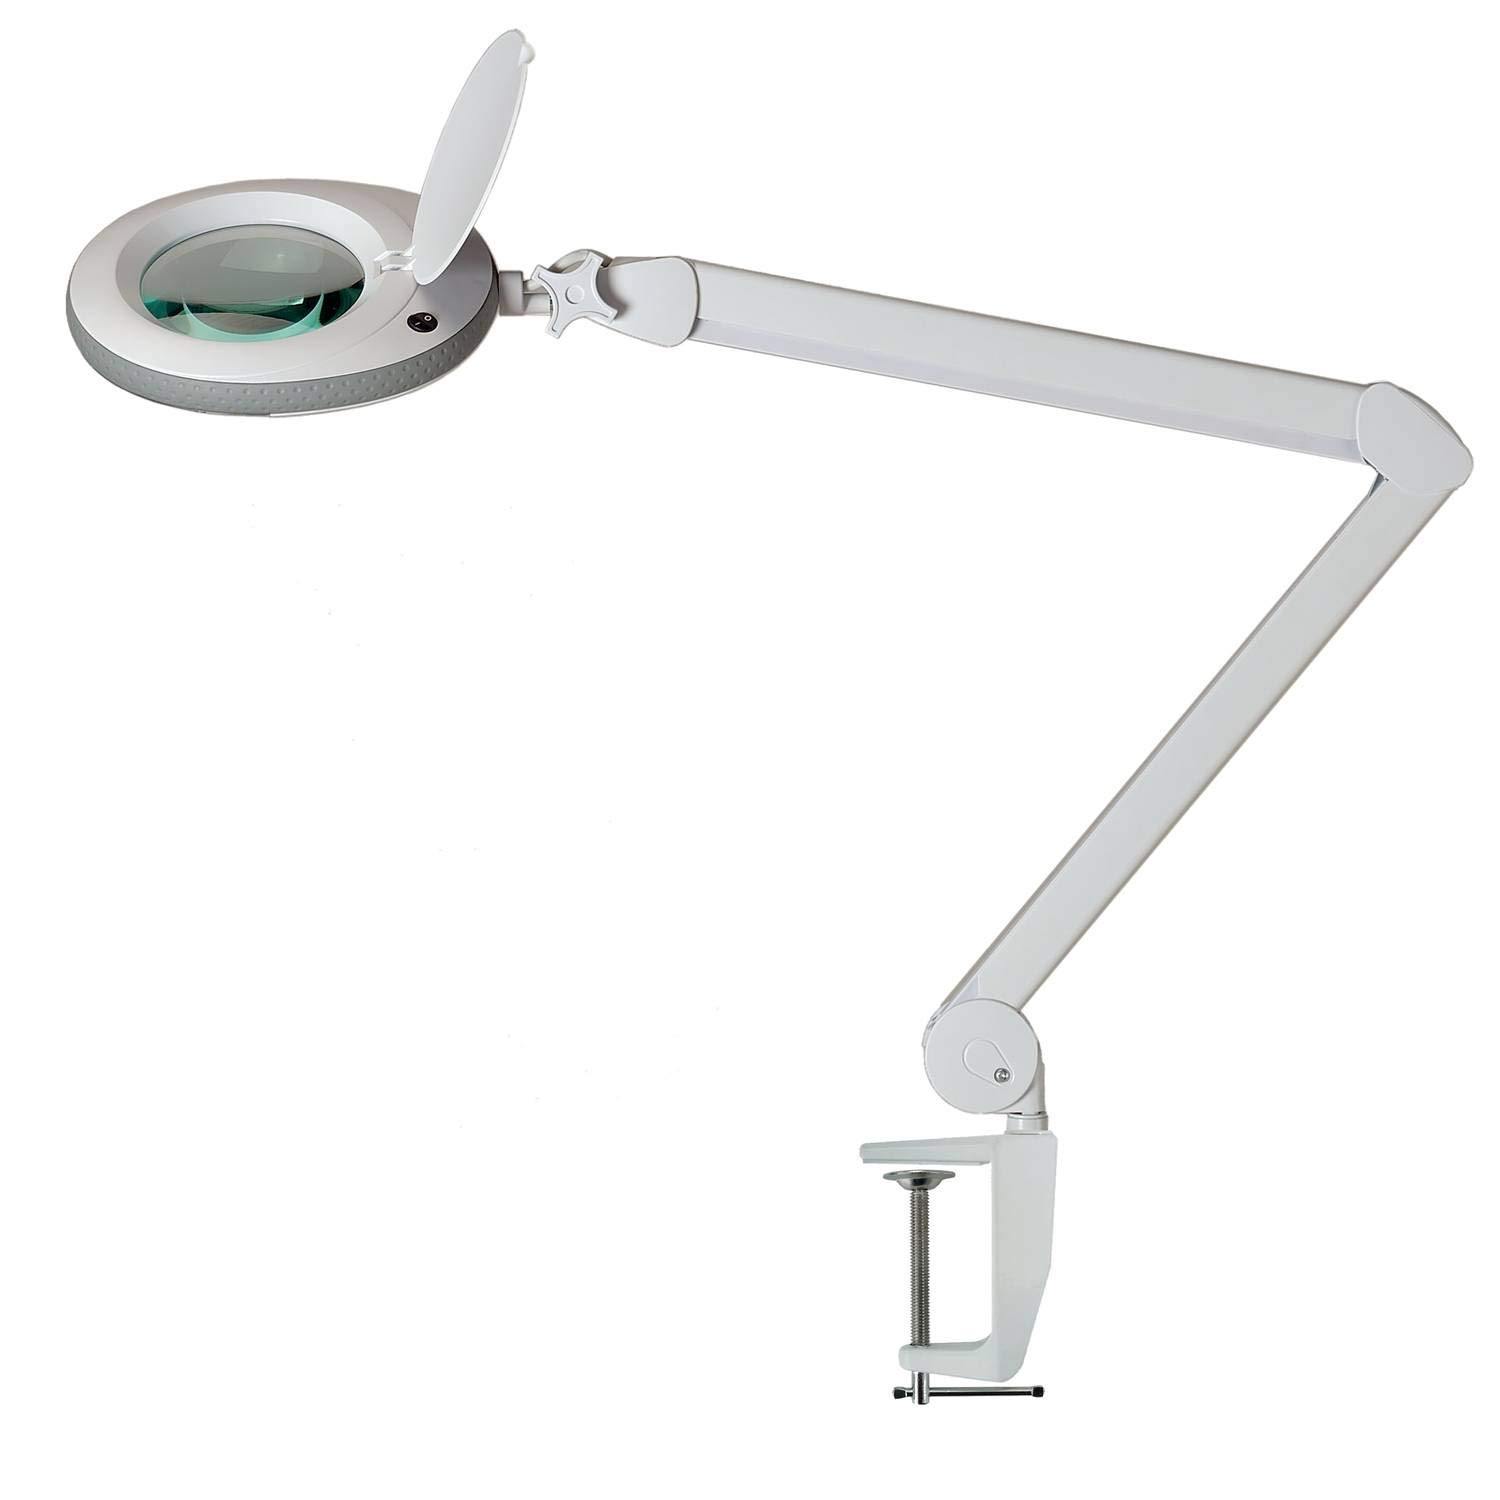 Lumeno Magnifying lamp, workplace lamp, cosmetic lamp with 96 LEDs, grey, for cosmetic salons, practices, hobbyists, reading aid/enlargement lamp/lens/loupe magnifier in 3, 5 or 8 dioptres 3 dioptre